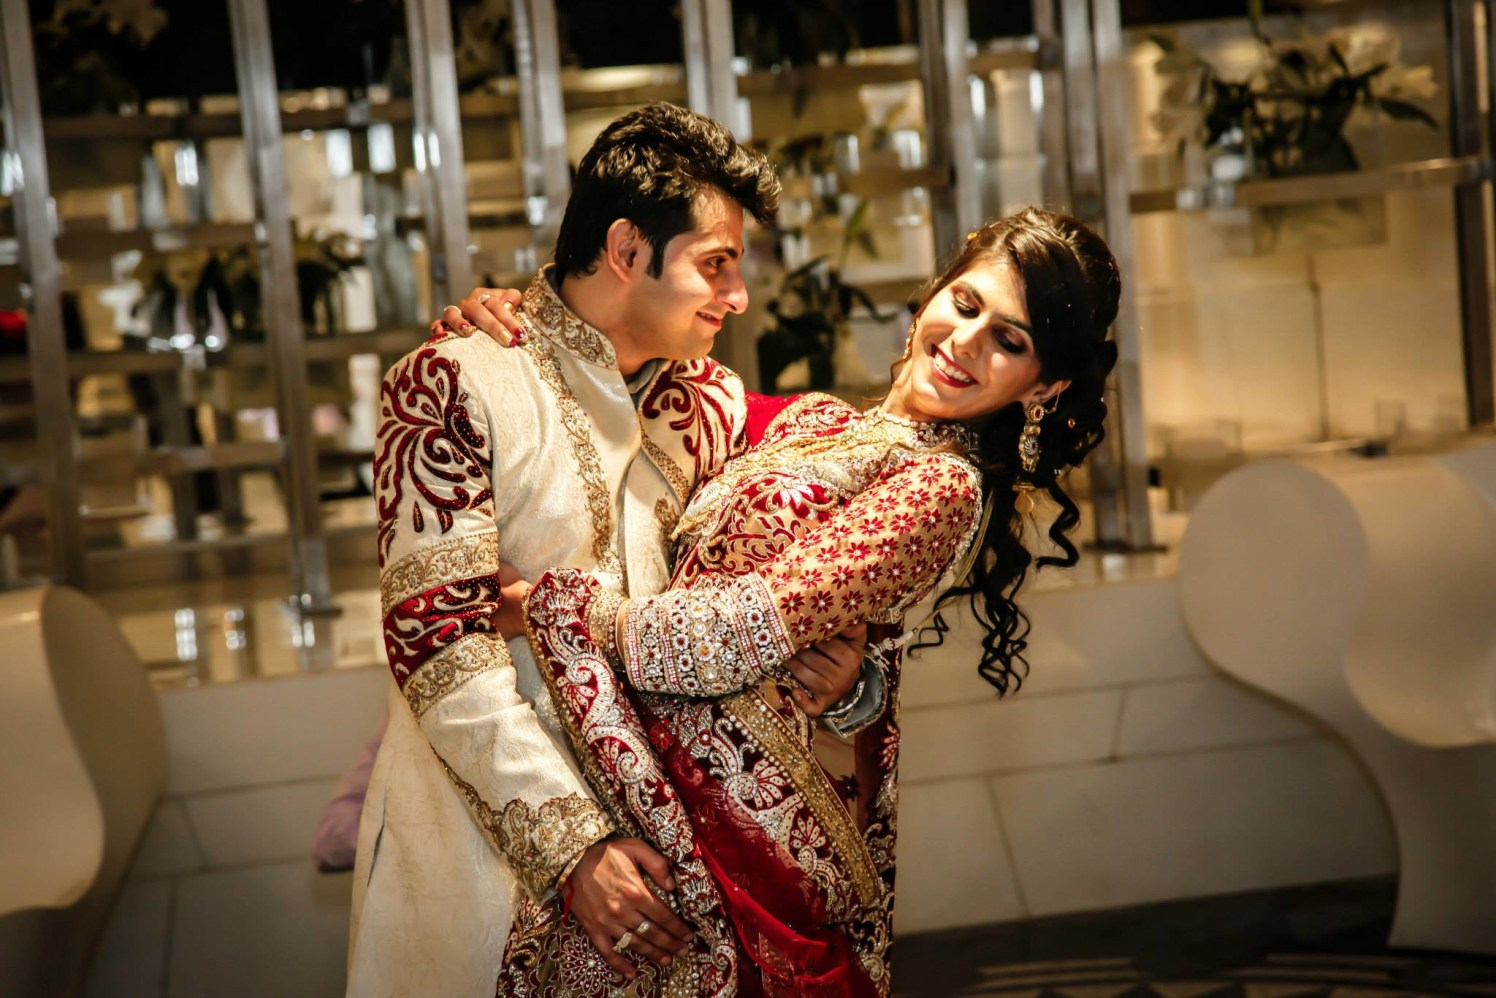 Bride And Groom Photography On Engagement Day by Gitesh Dhawan Wedding-photography | Weddings Photos & Ideas